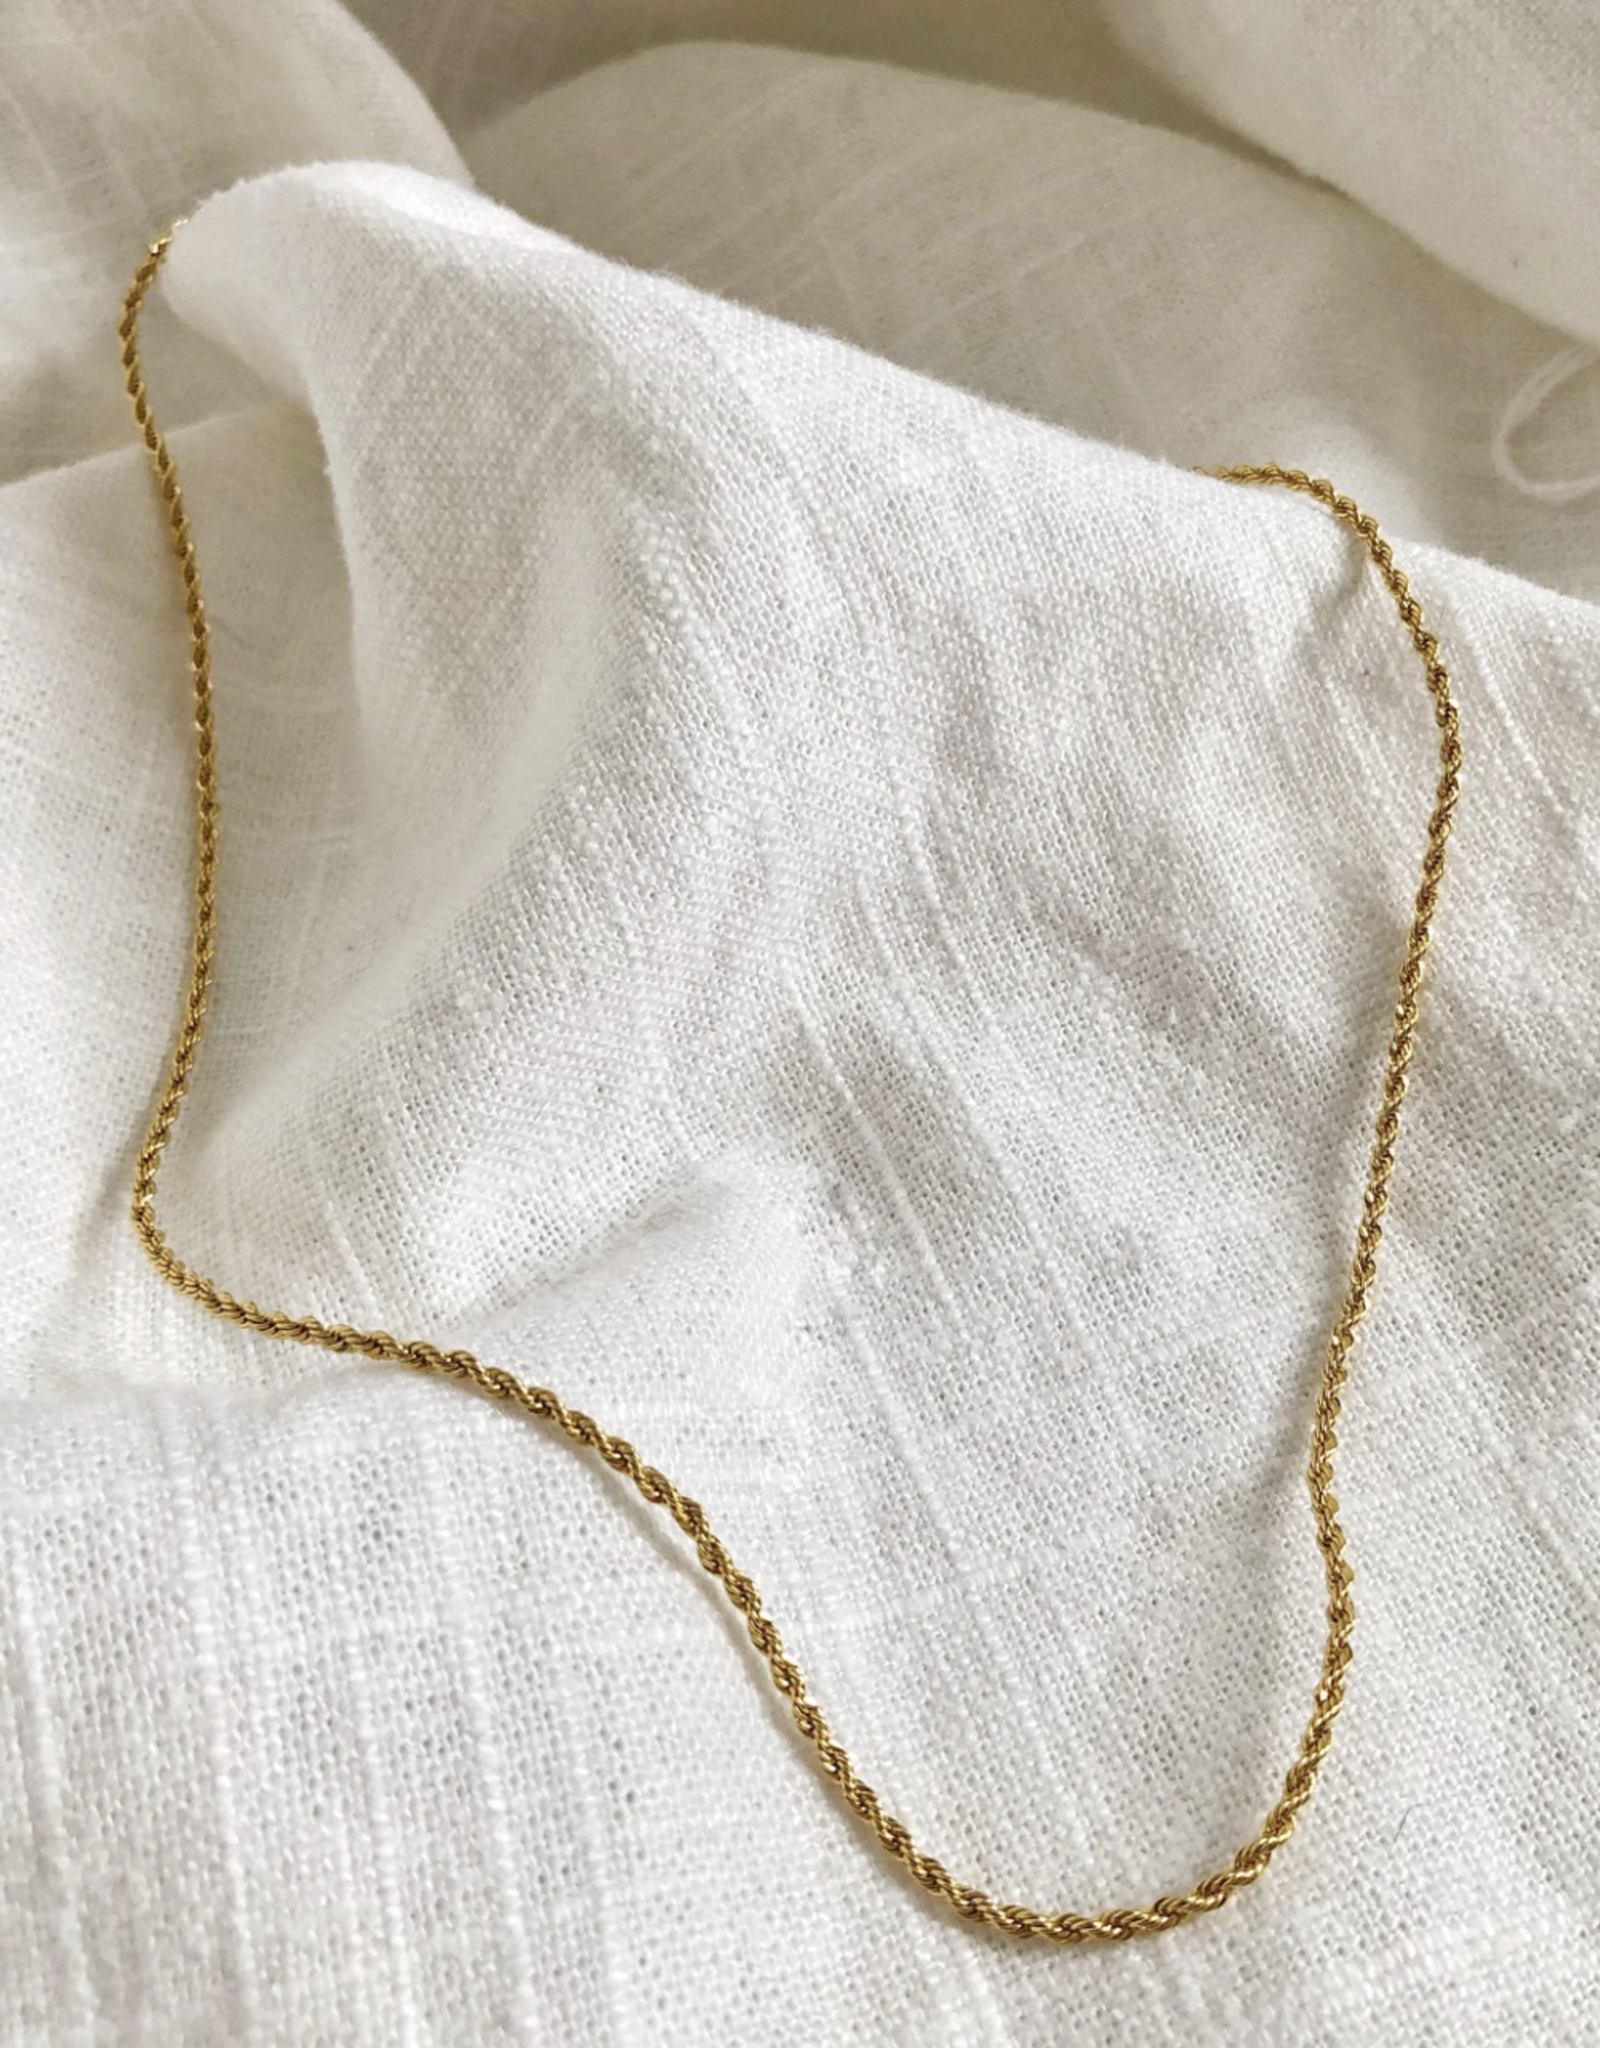 Bofemme Bofemme Rope Chain Necklace